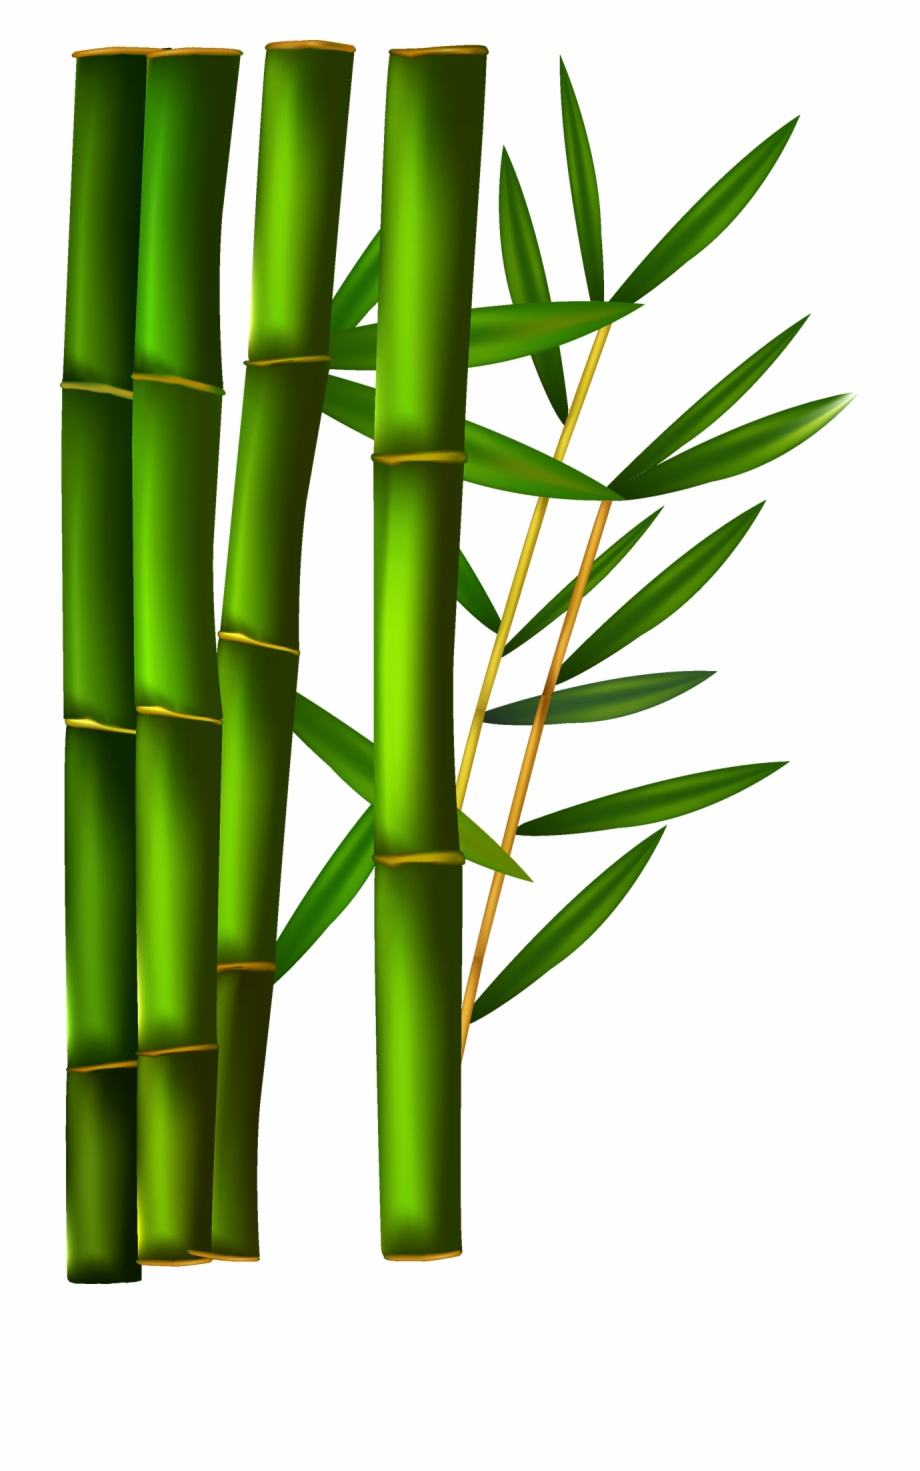 Transparent Background Bamboo Clipart.